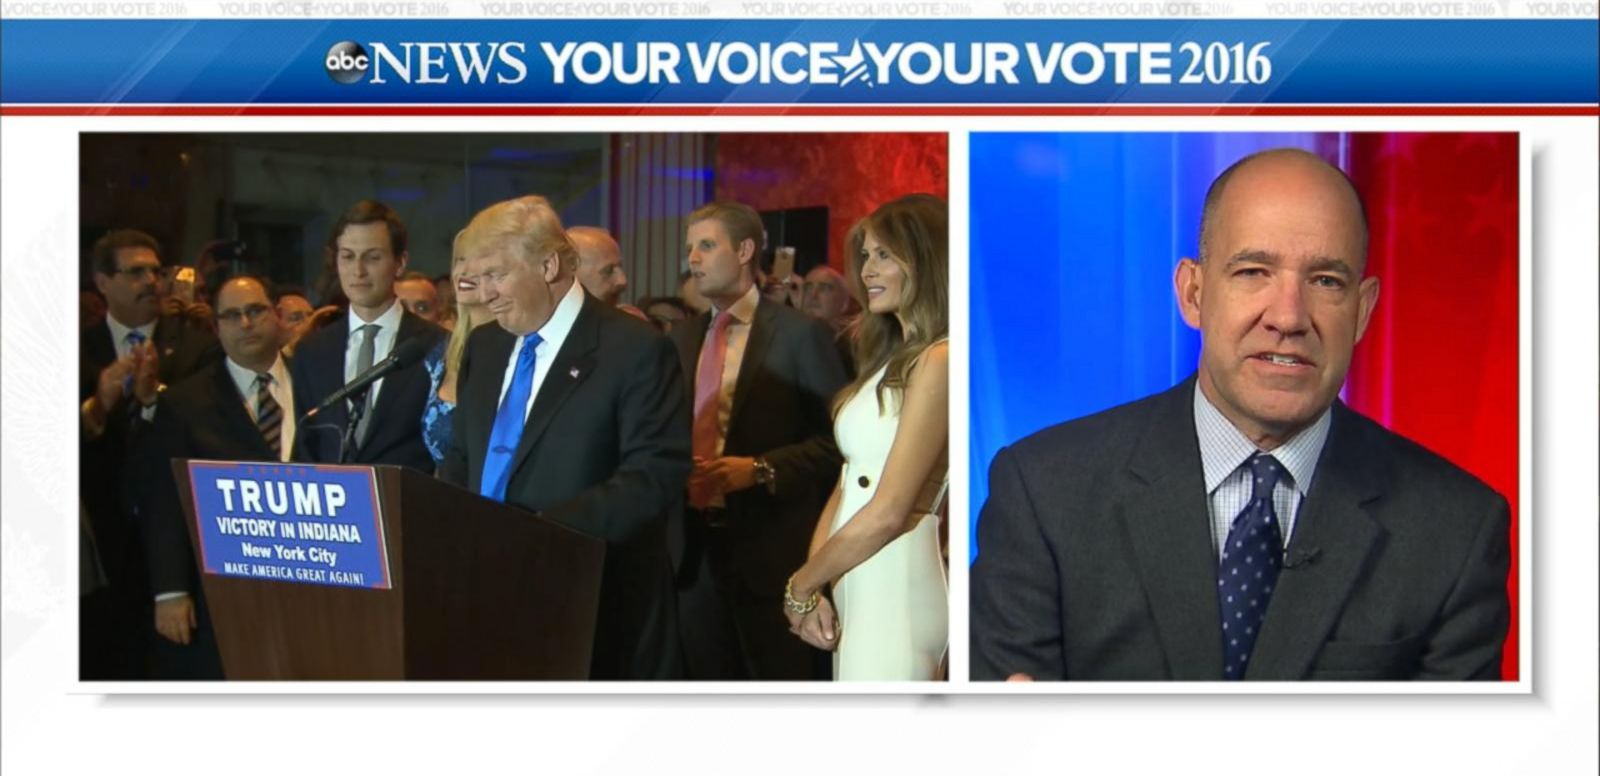 VIDEO: Election 2016: Donald Trump's Impact on the Republican Party